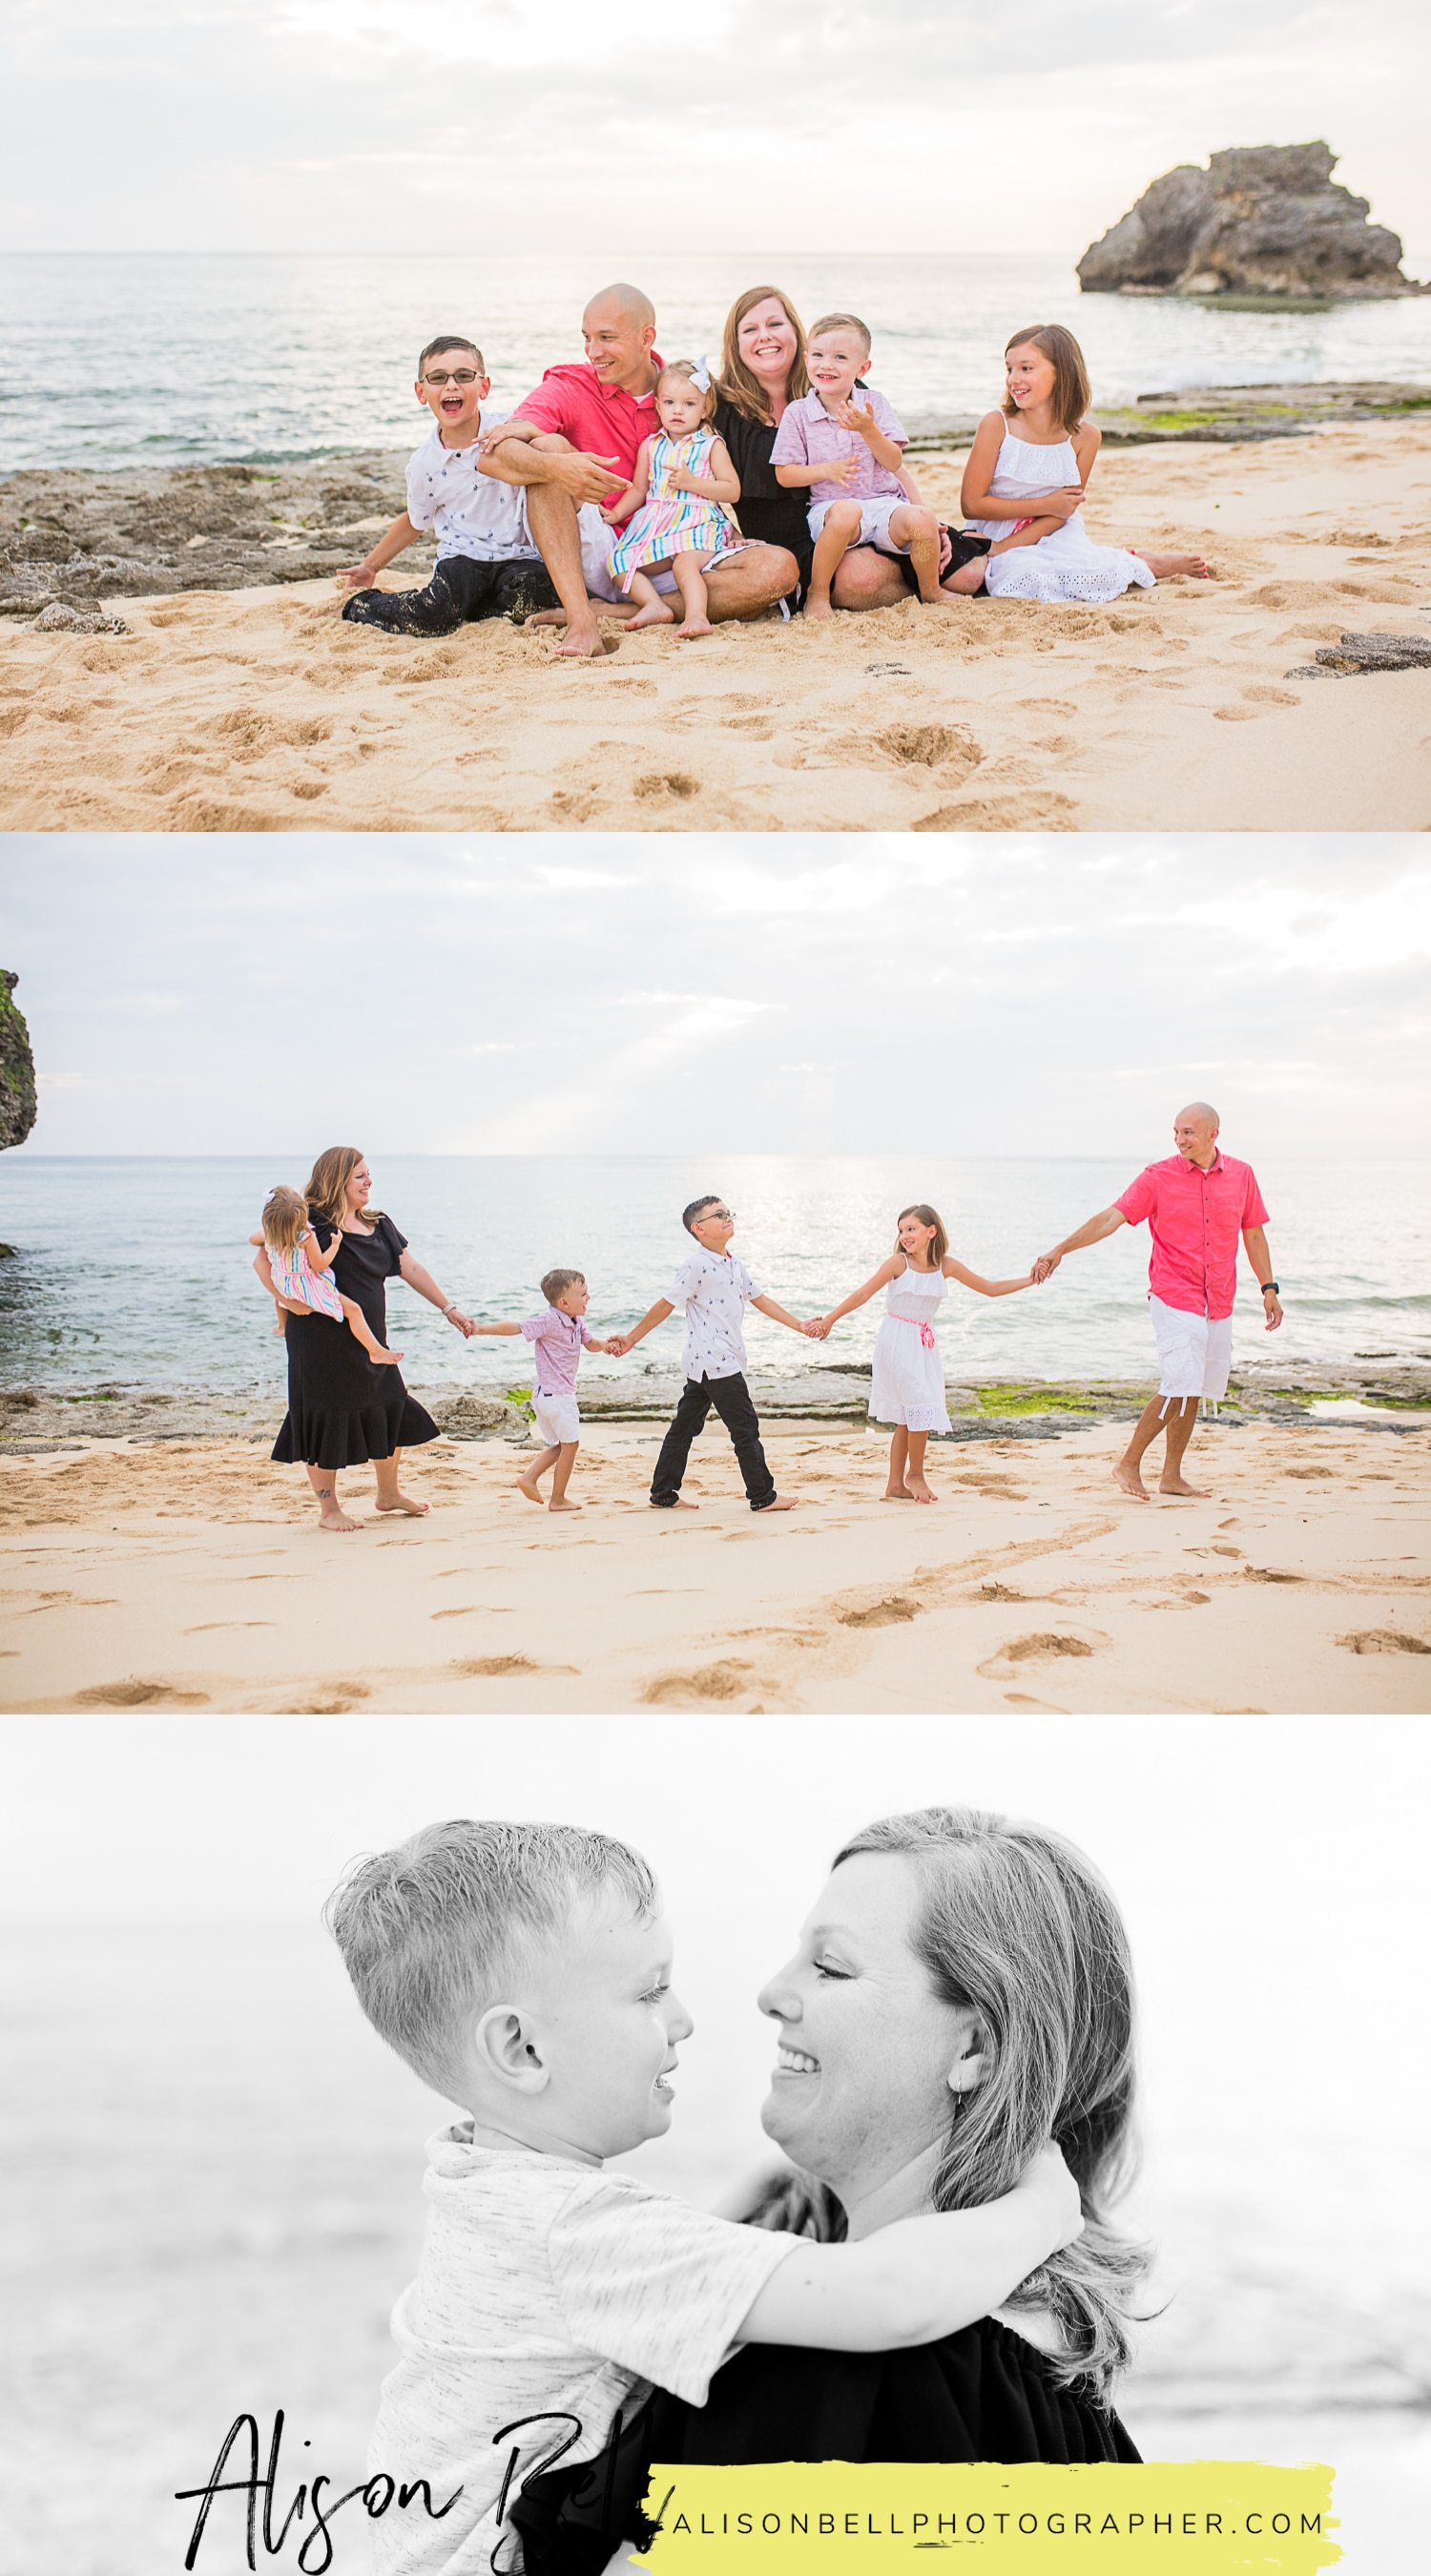 Big family photography Quantico, VA by Alison Bell Photographer. #alisonbellphotog www.alisonbellphotographer.com